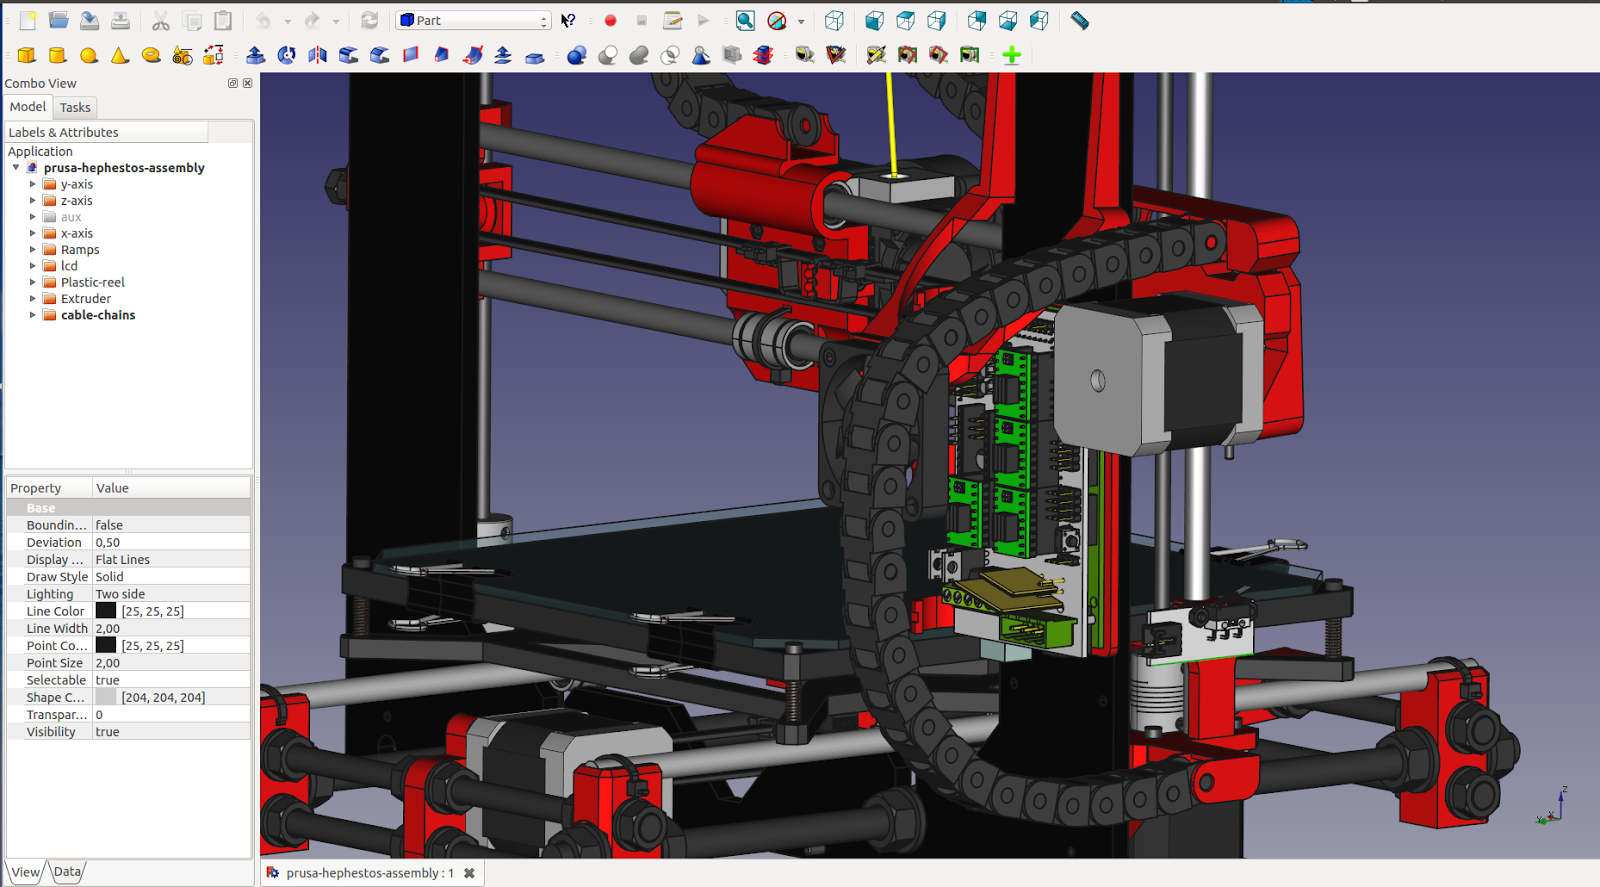 3D CAD under Linux - FreeCAD